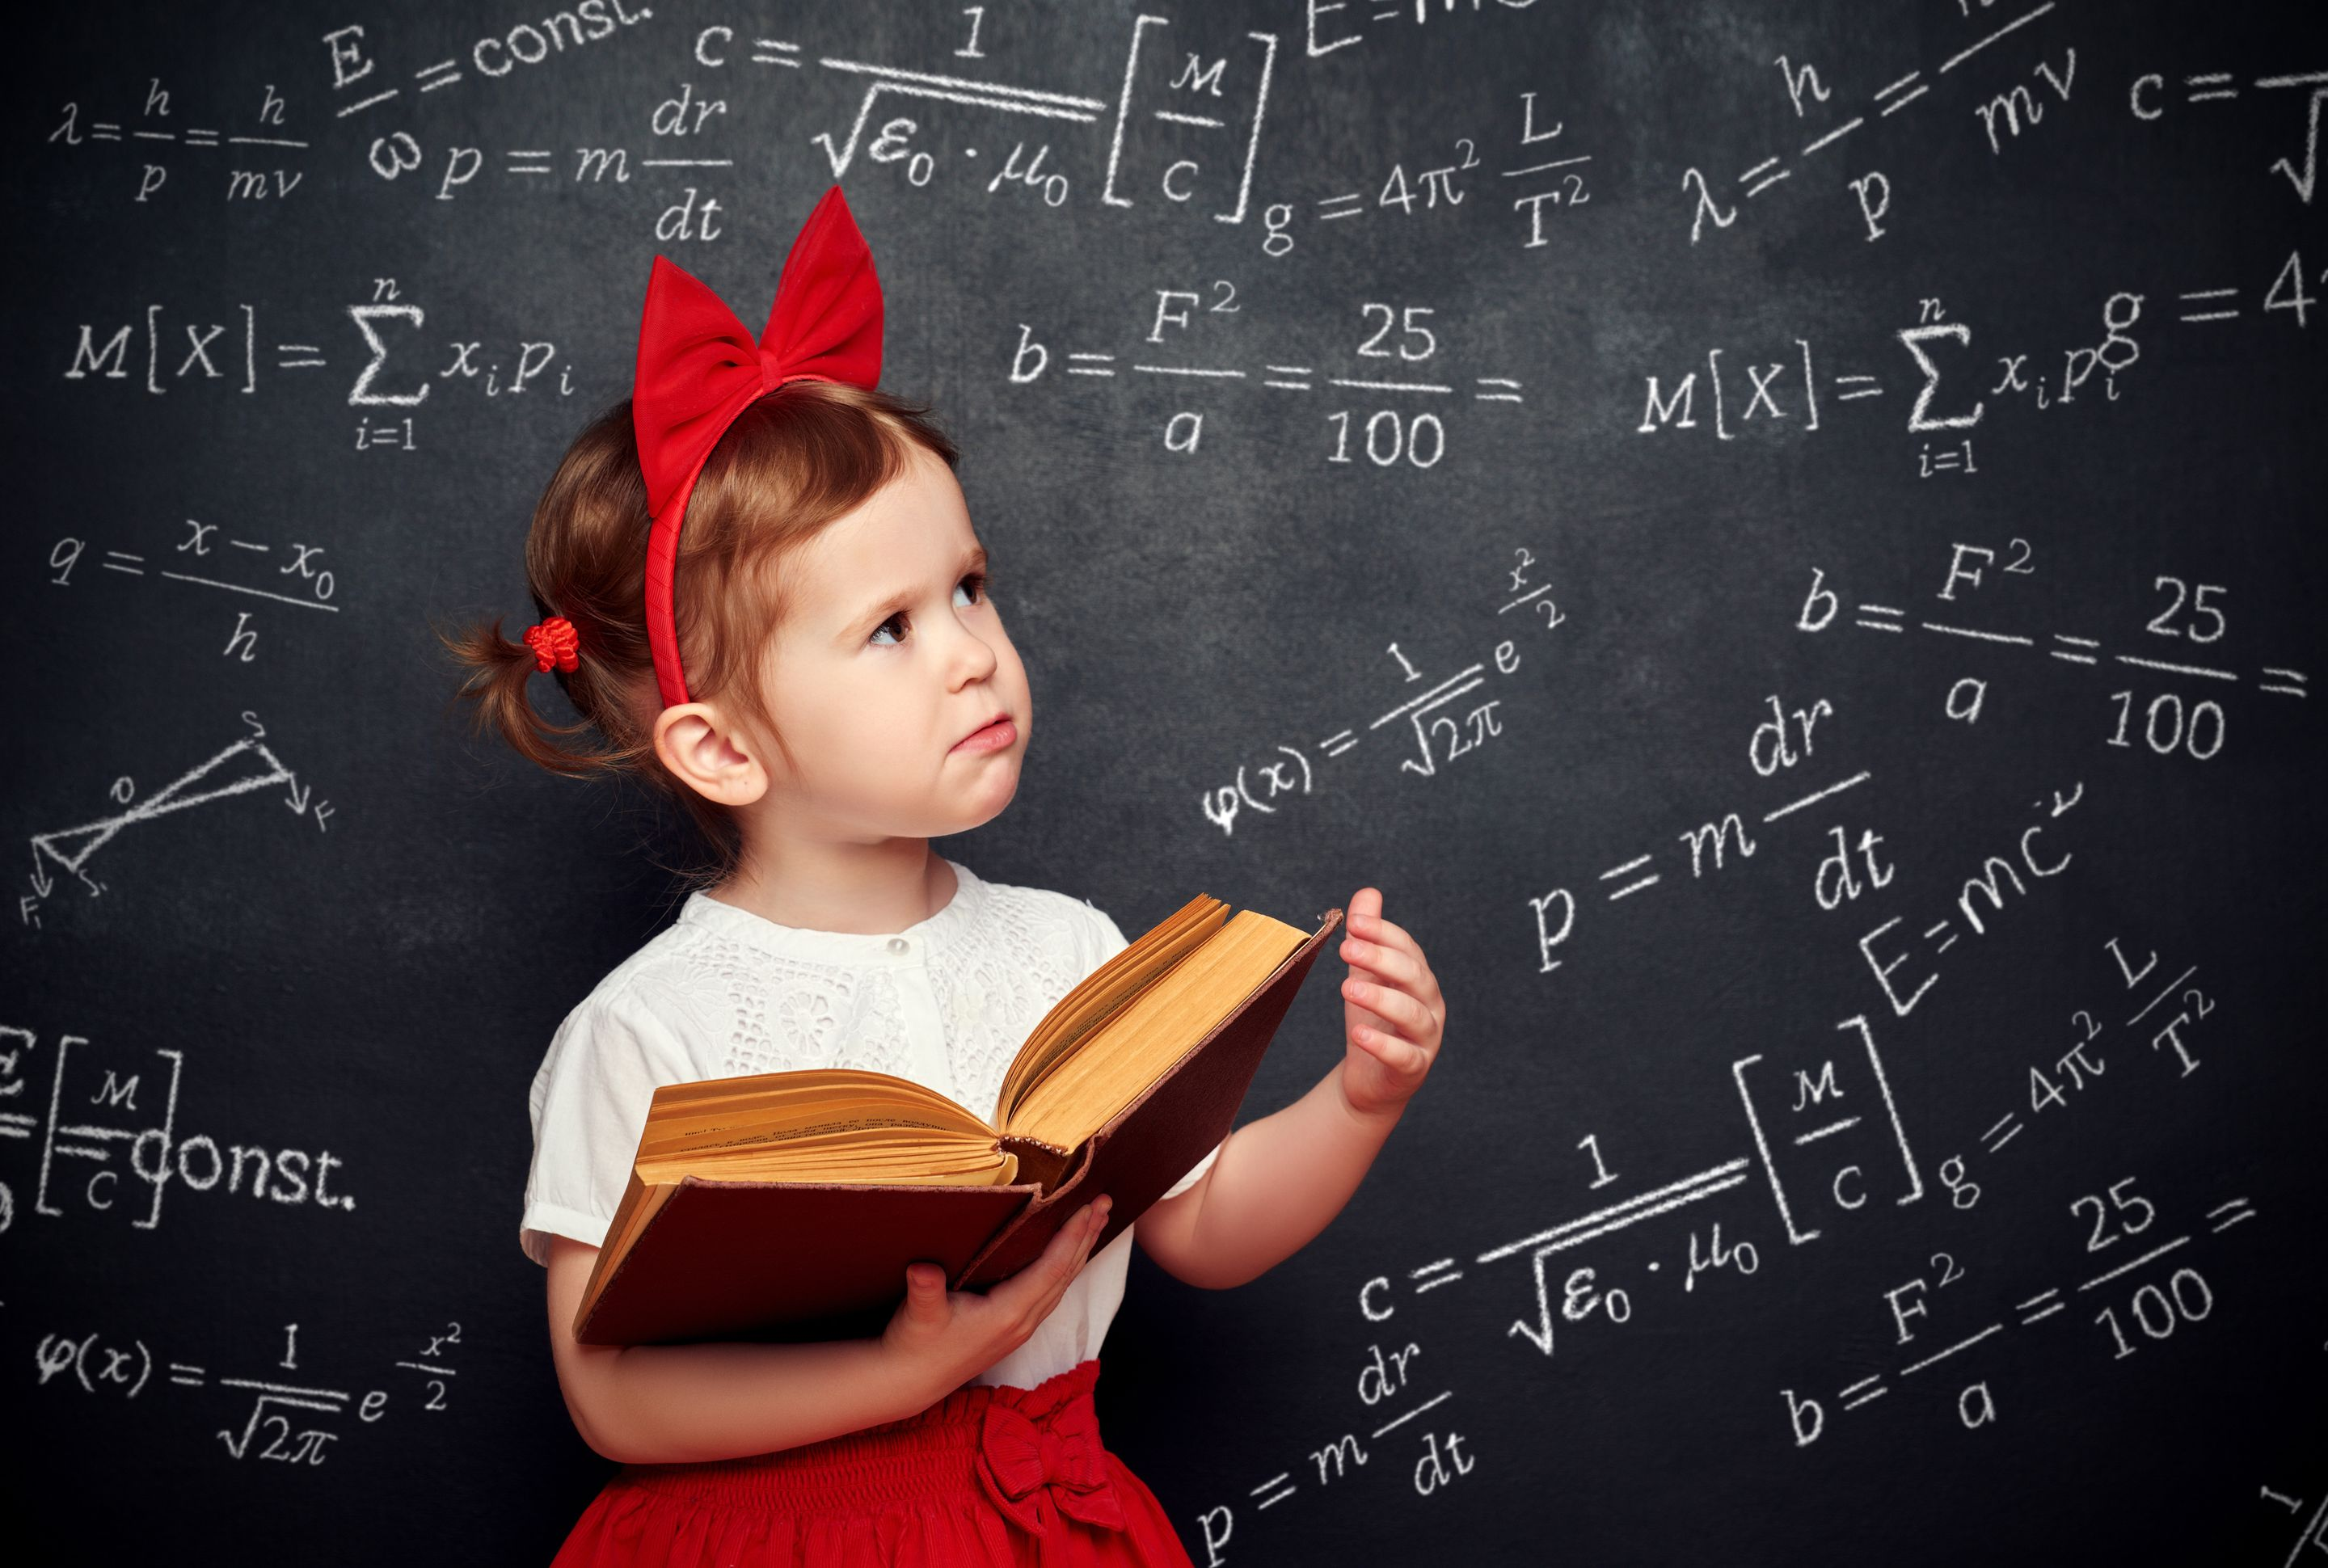 A toddler in a red and white outfit holding an open book in front of a blackboard covered in advanced math formulas